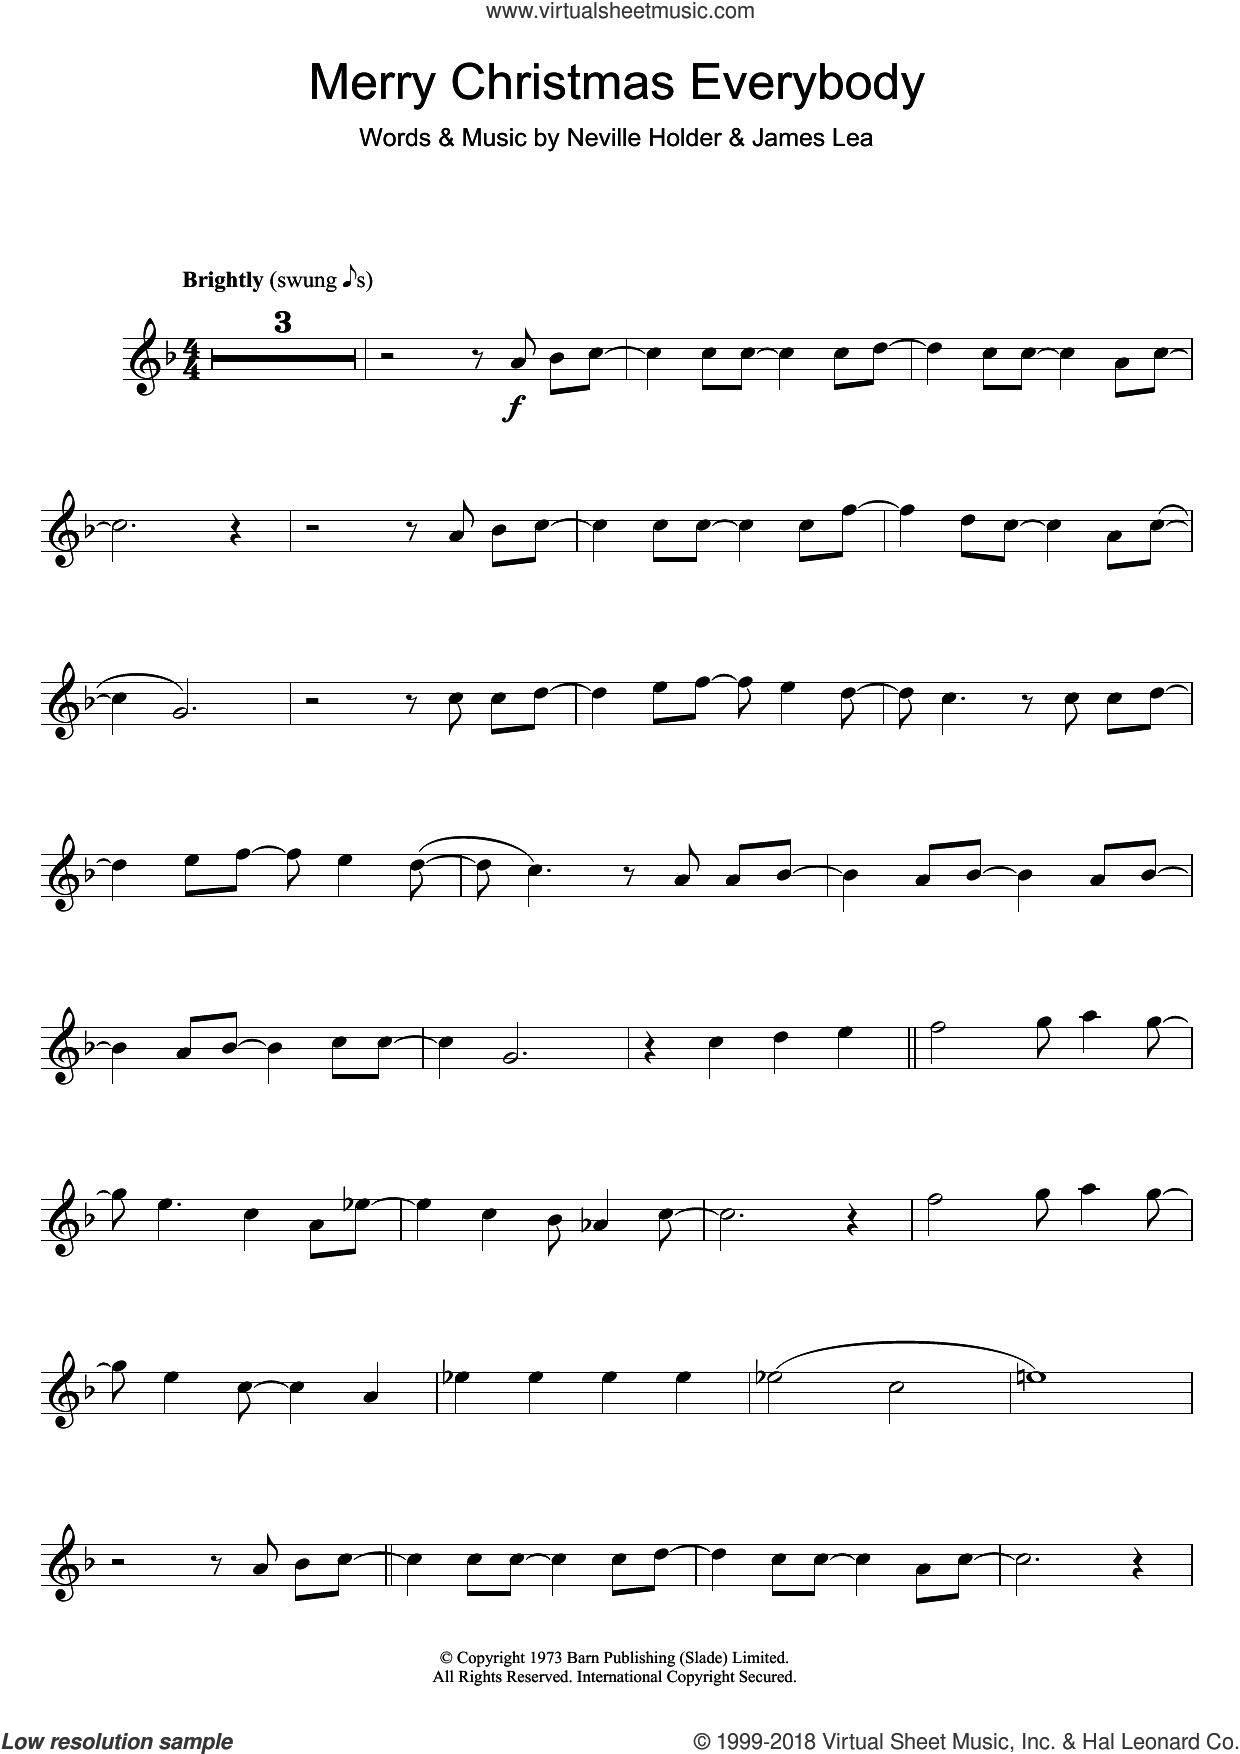 Merry Xmas Everybody sheet music for flute solo by Mud, S Club 7, Slade, James Lea and Neville Holder, intermediate skill level